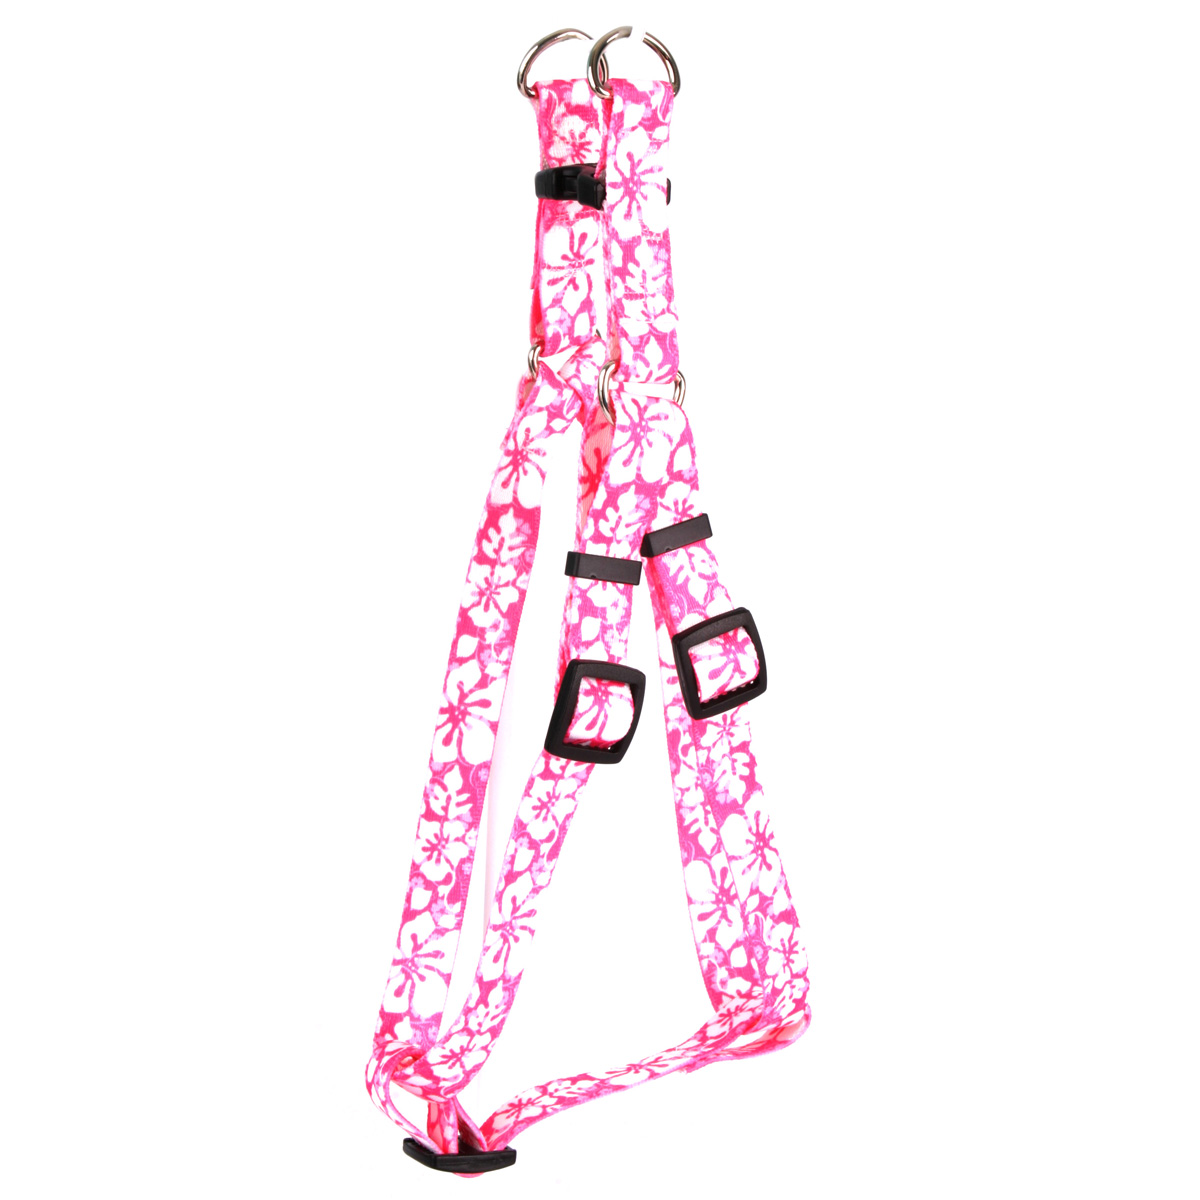 Island Floral Pink Step-In Harness